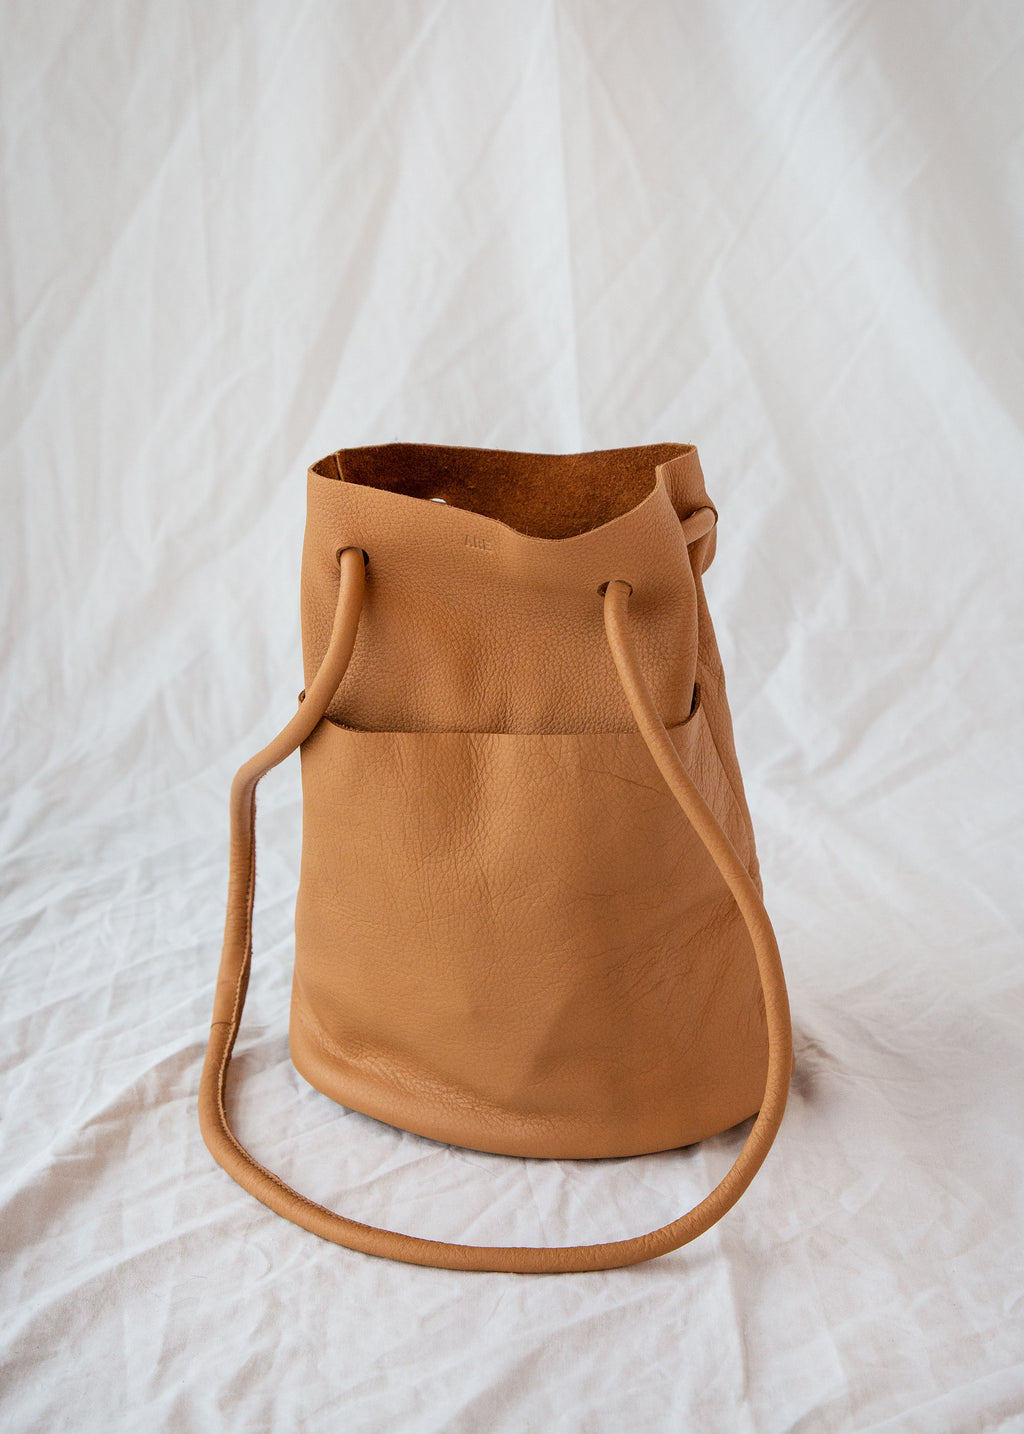 Tube in Tan - SOLD OUT